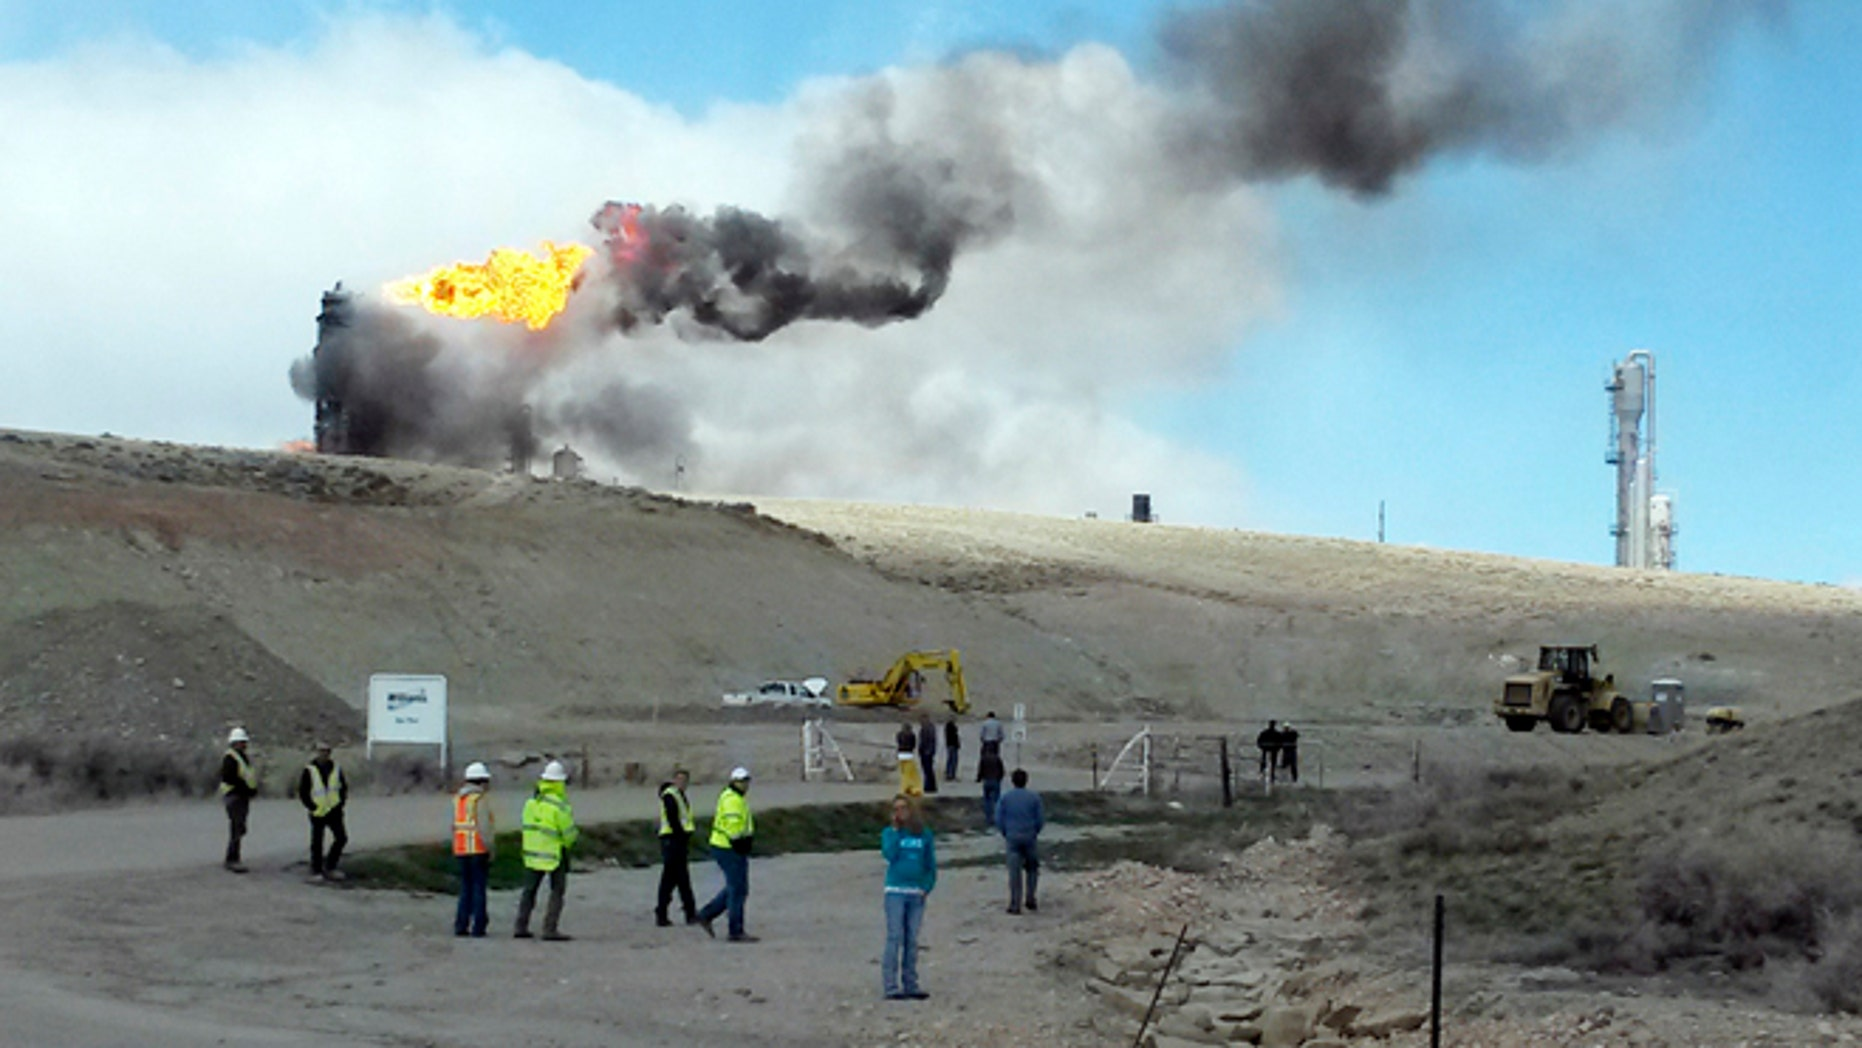 April 23: This image shows officials at the site of an explosion and fire at a natural gas processing facility and major national pipeline hub in Opal, Wyo.